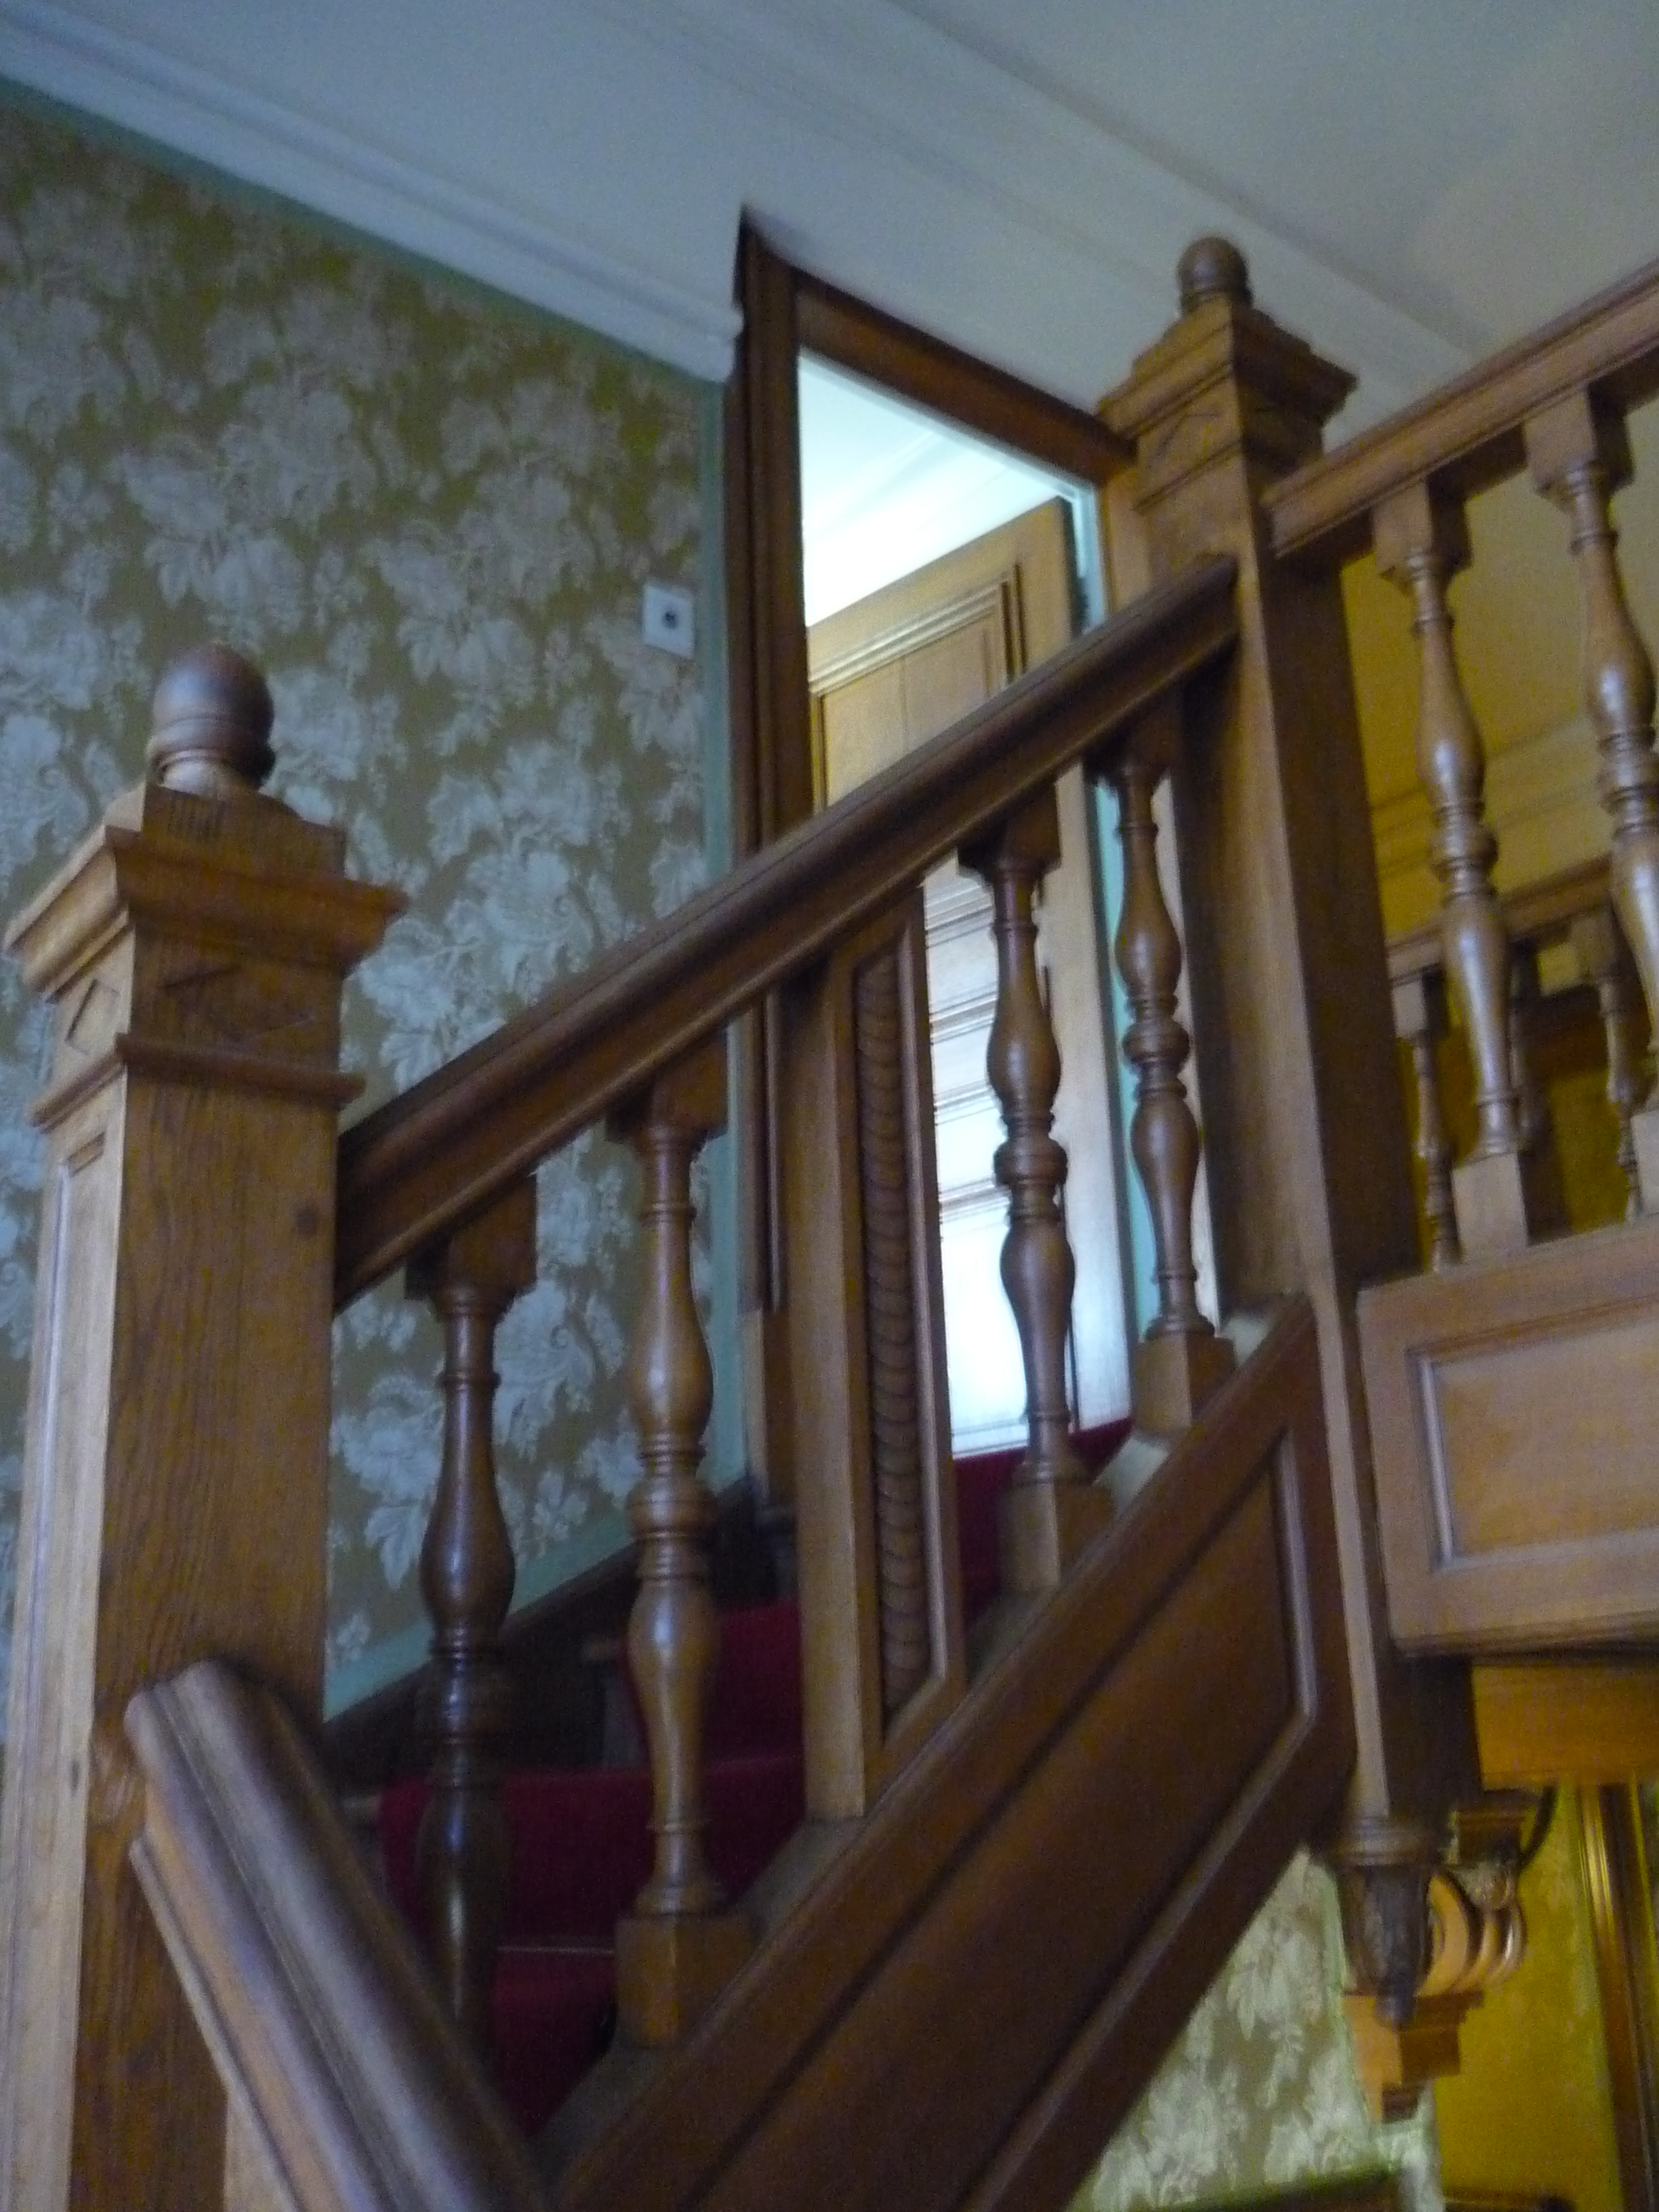 Staircase reputably built by Robert Jnr. Anderson at Waddesdon Manor